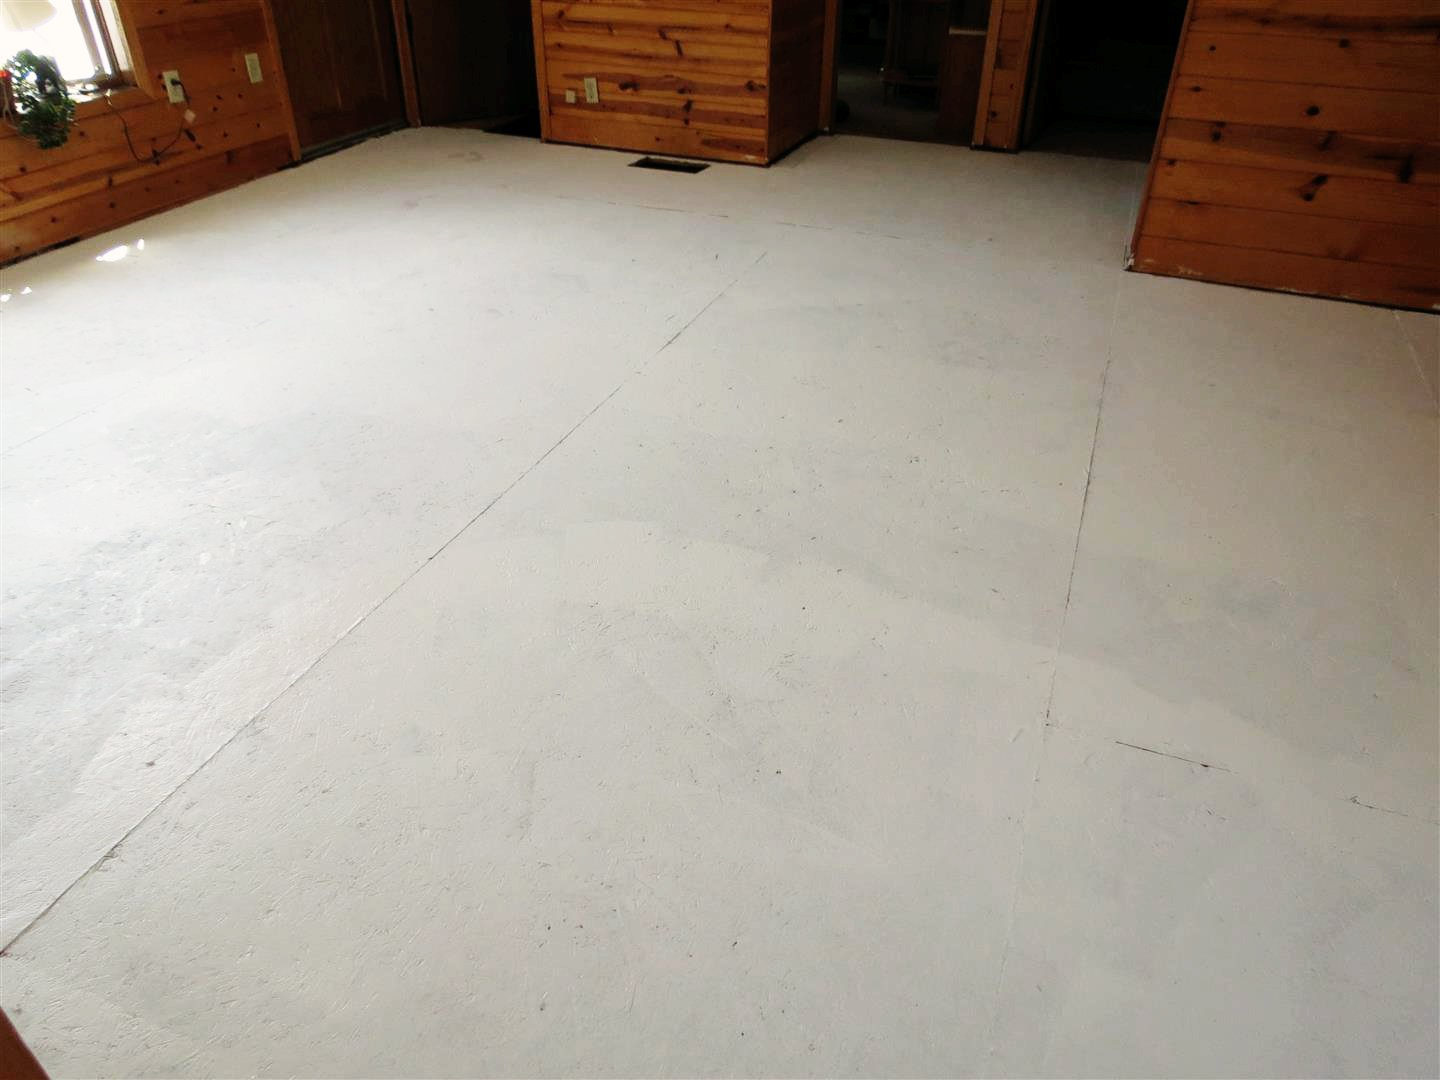 Painting osb flooring floor matttroy for Painting plywood floors ideas